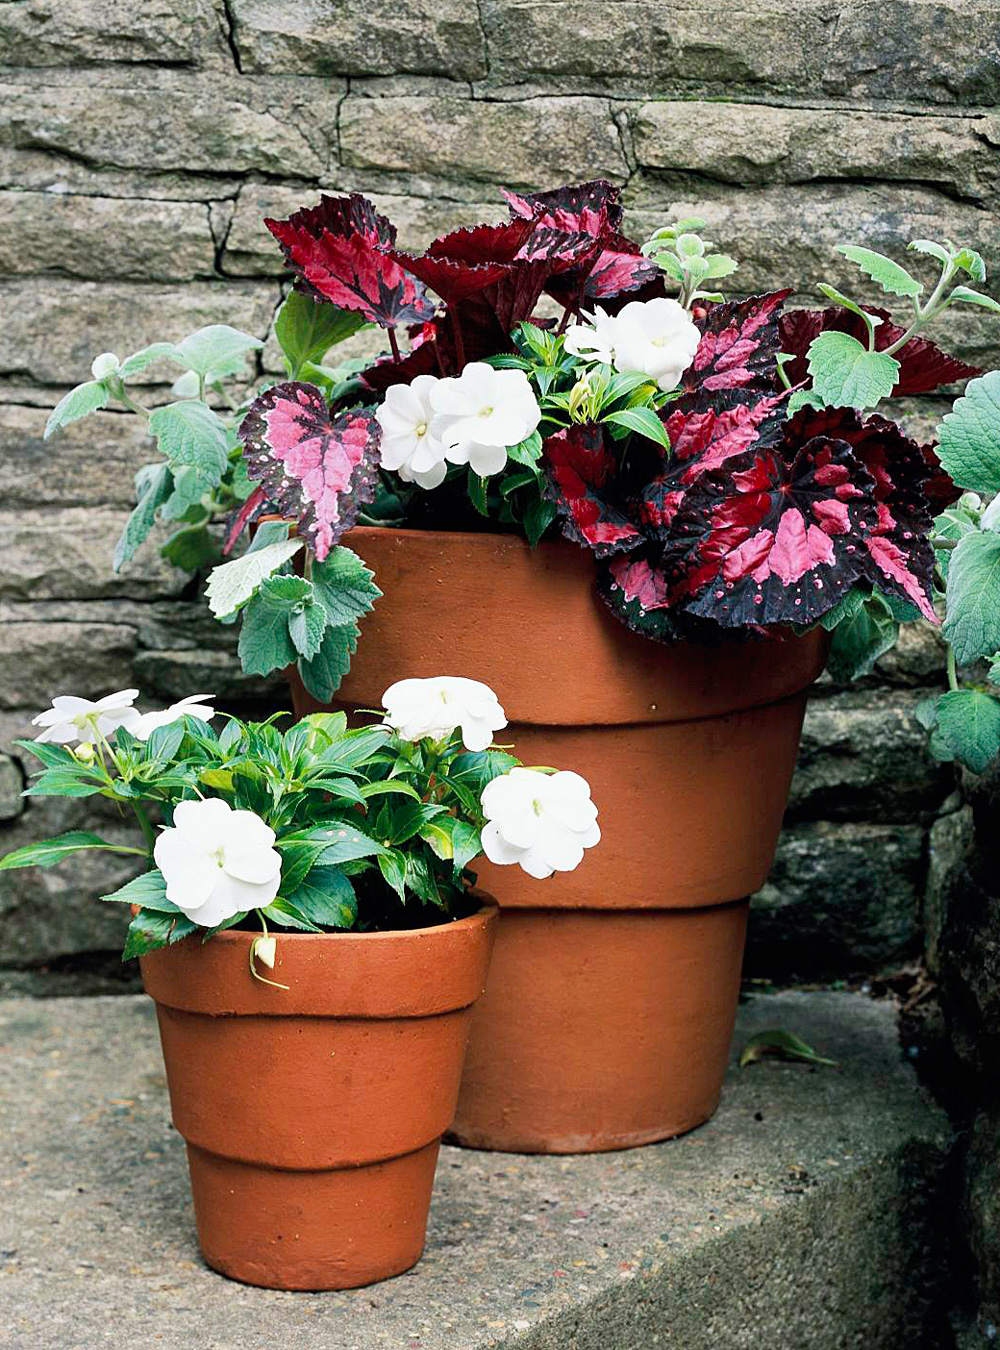 For color, try impatiens